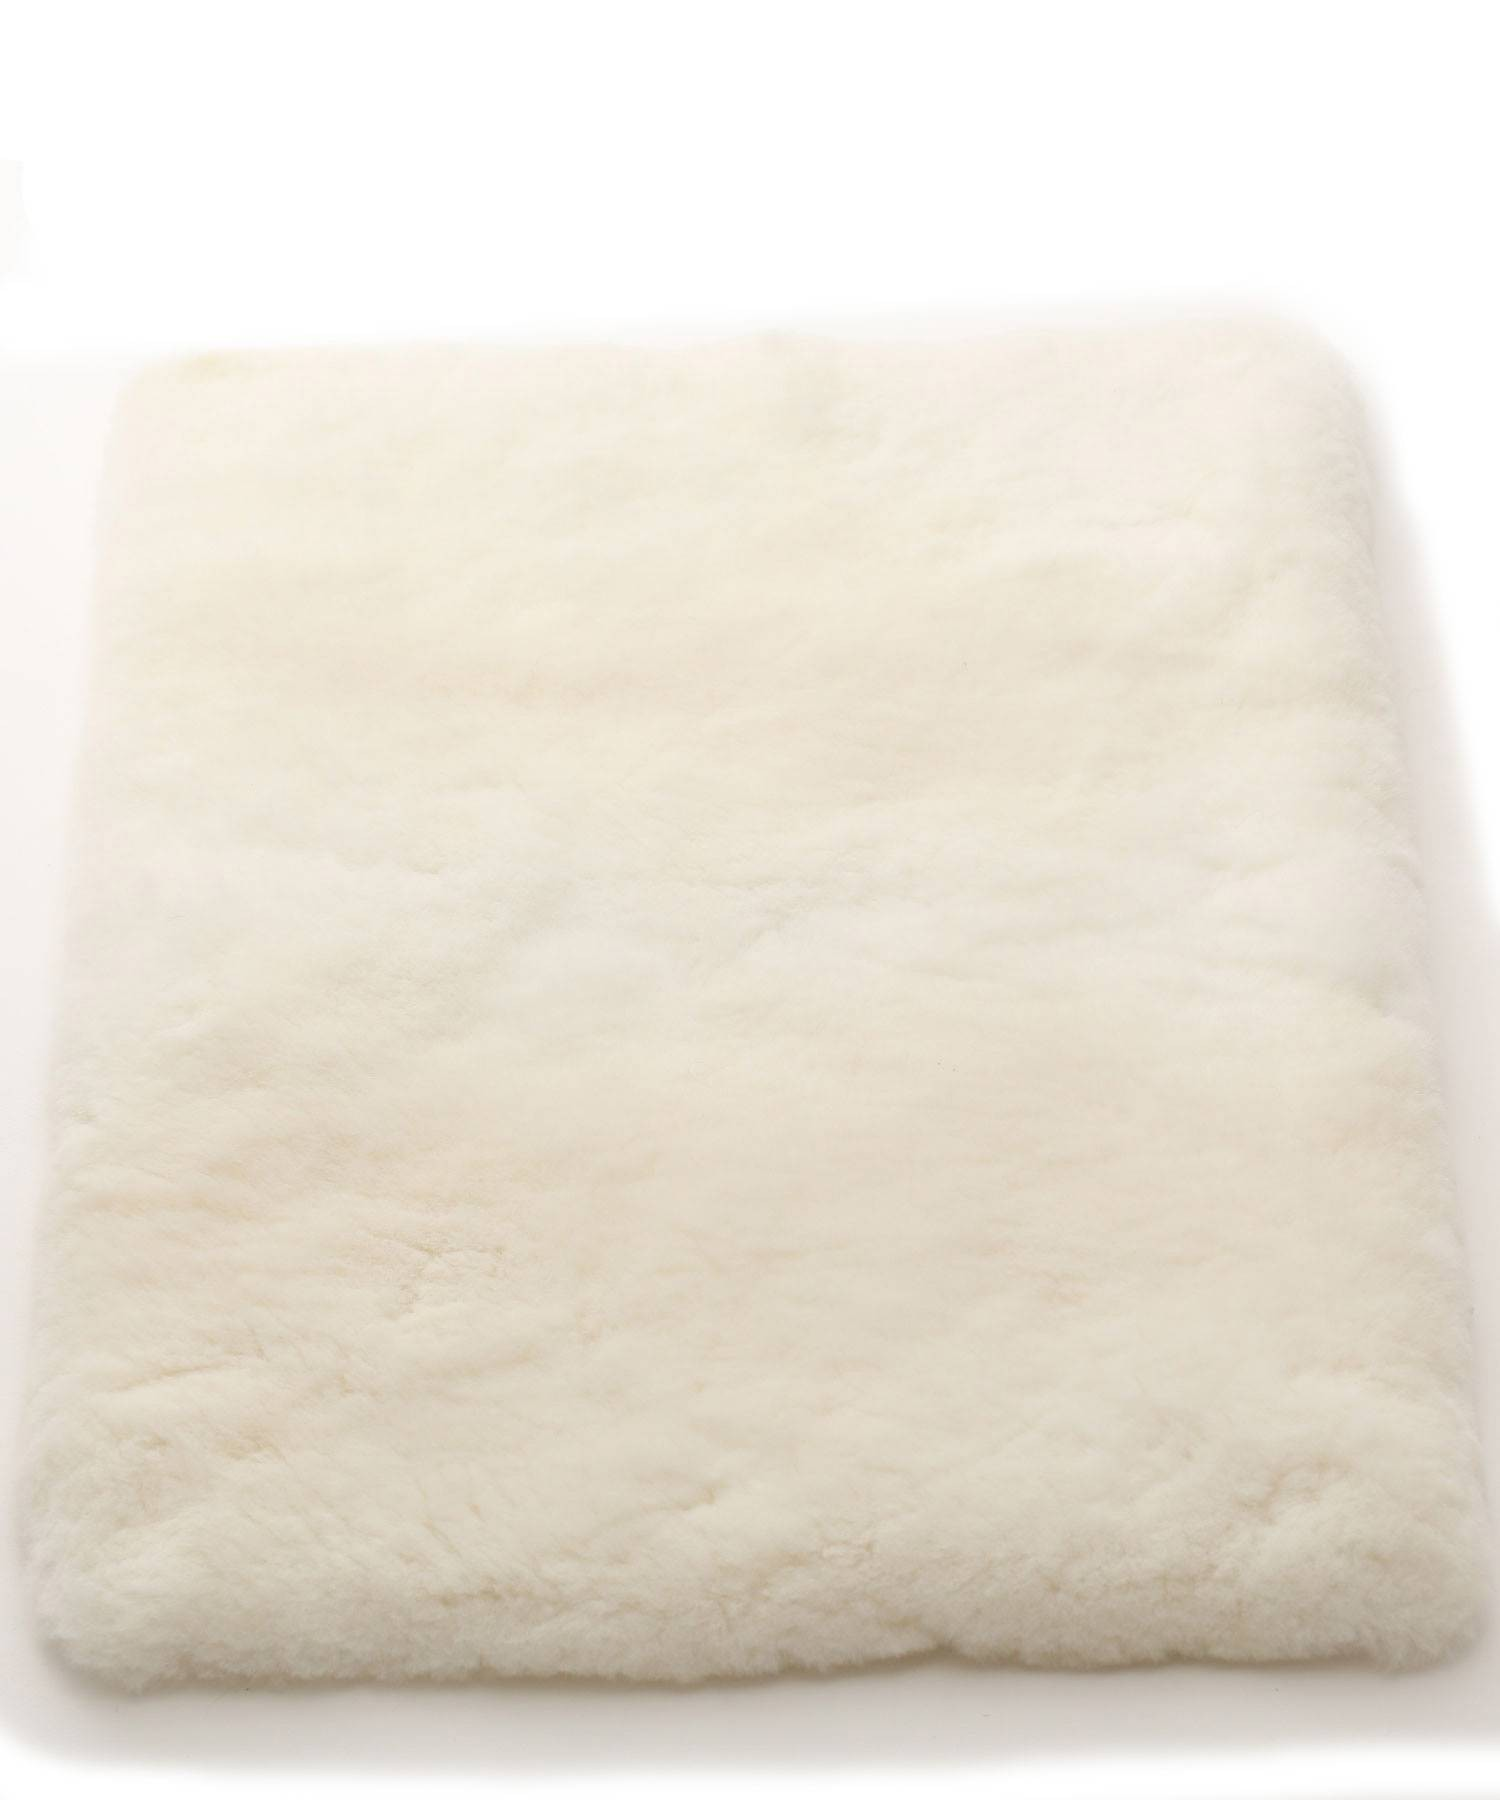 Alpaca Fur Rug White In Alpaca Clothing Co Range